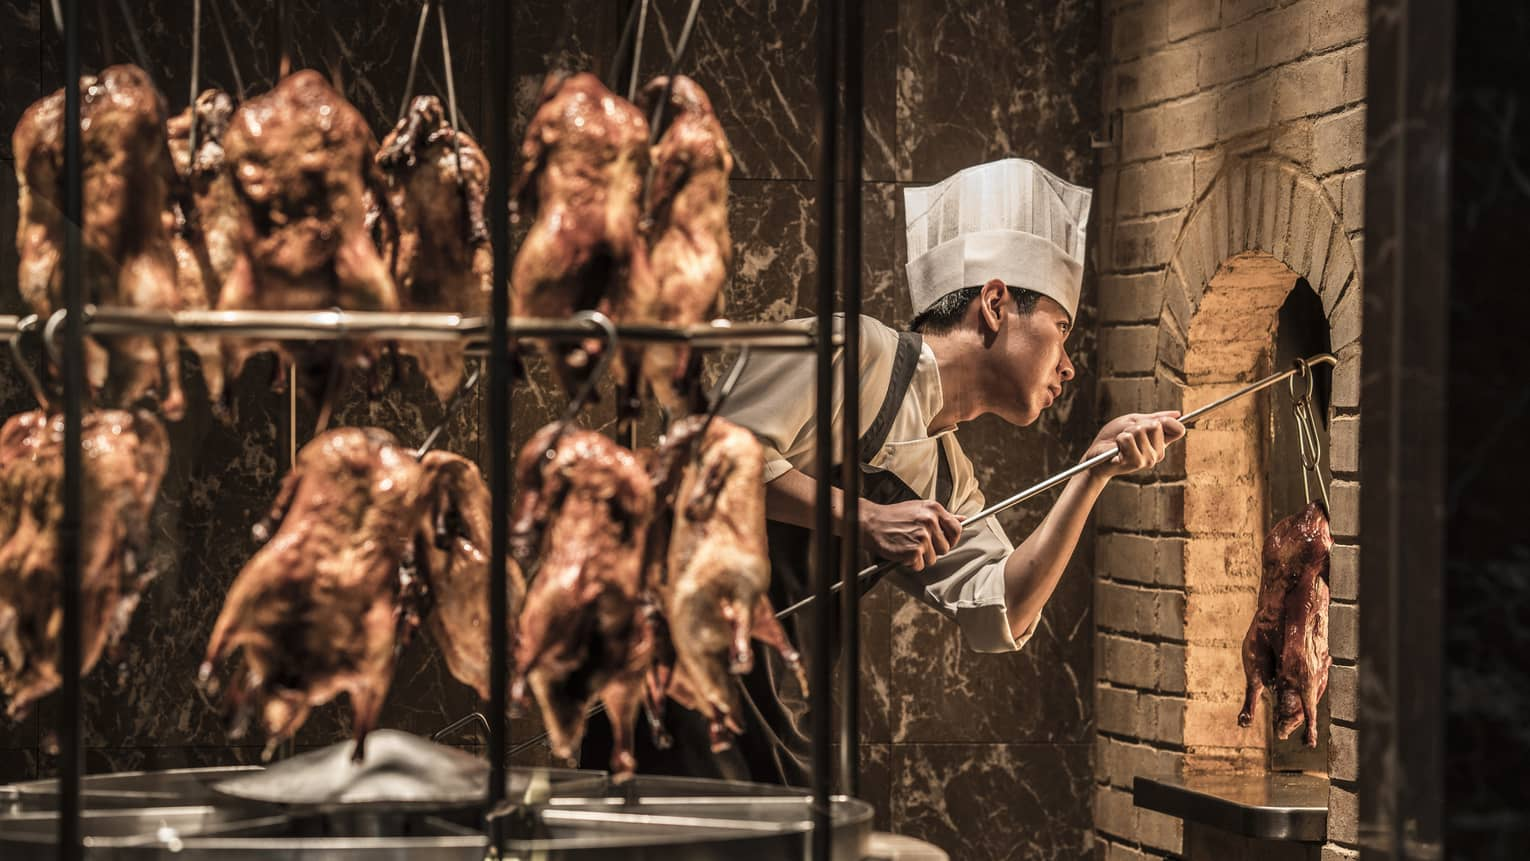 Rotisserie with hanging whole ducks in front of chef wearing white hat, taking duck from brick oven